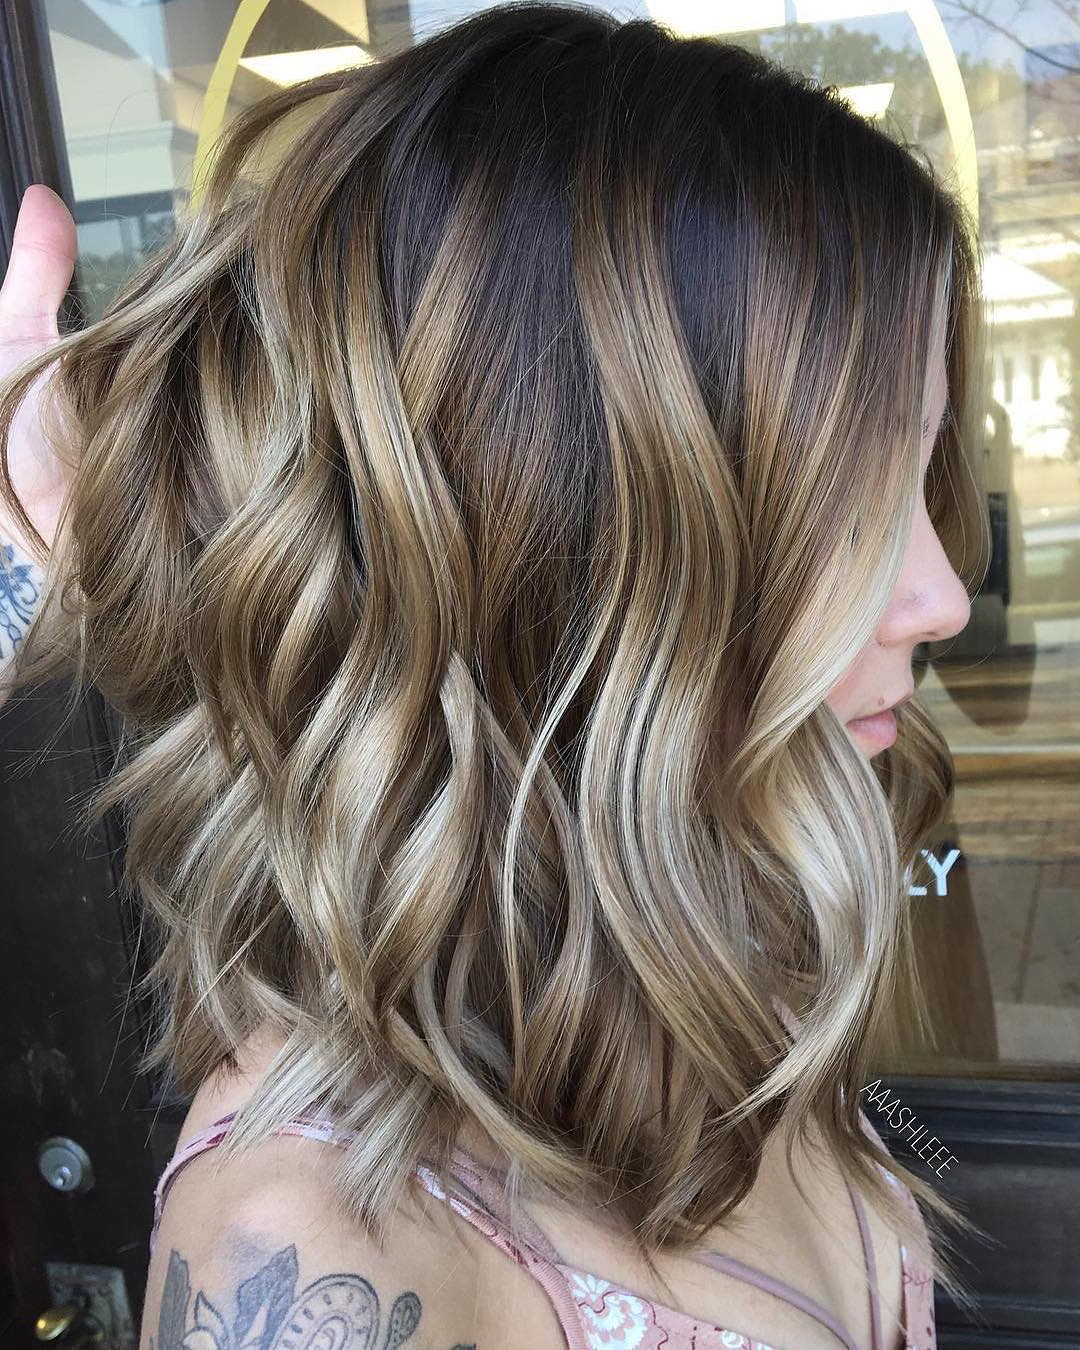 10 Ombre Balayage Hairstyles For Medium Length Hair, Hair Color 2018 Regarding Loosely Waved Messy Brunette Bob Hairstyles (View 1 of 20)